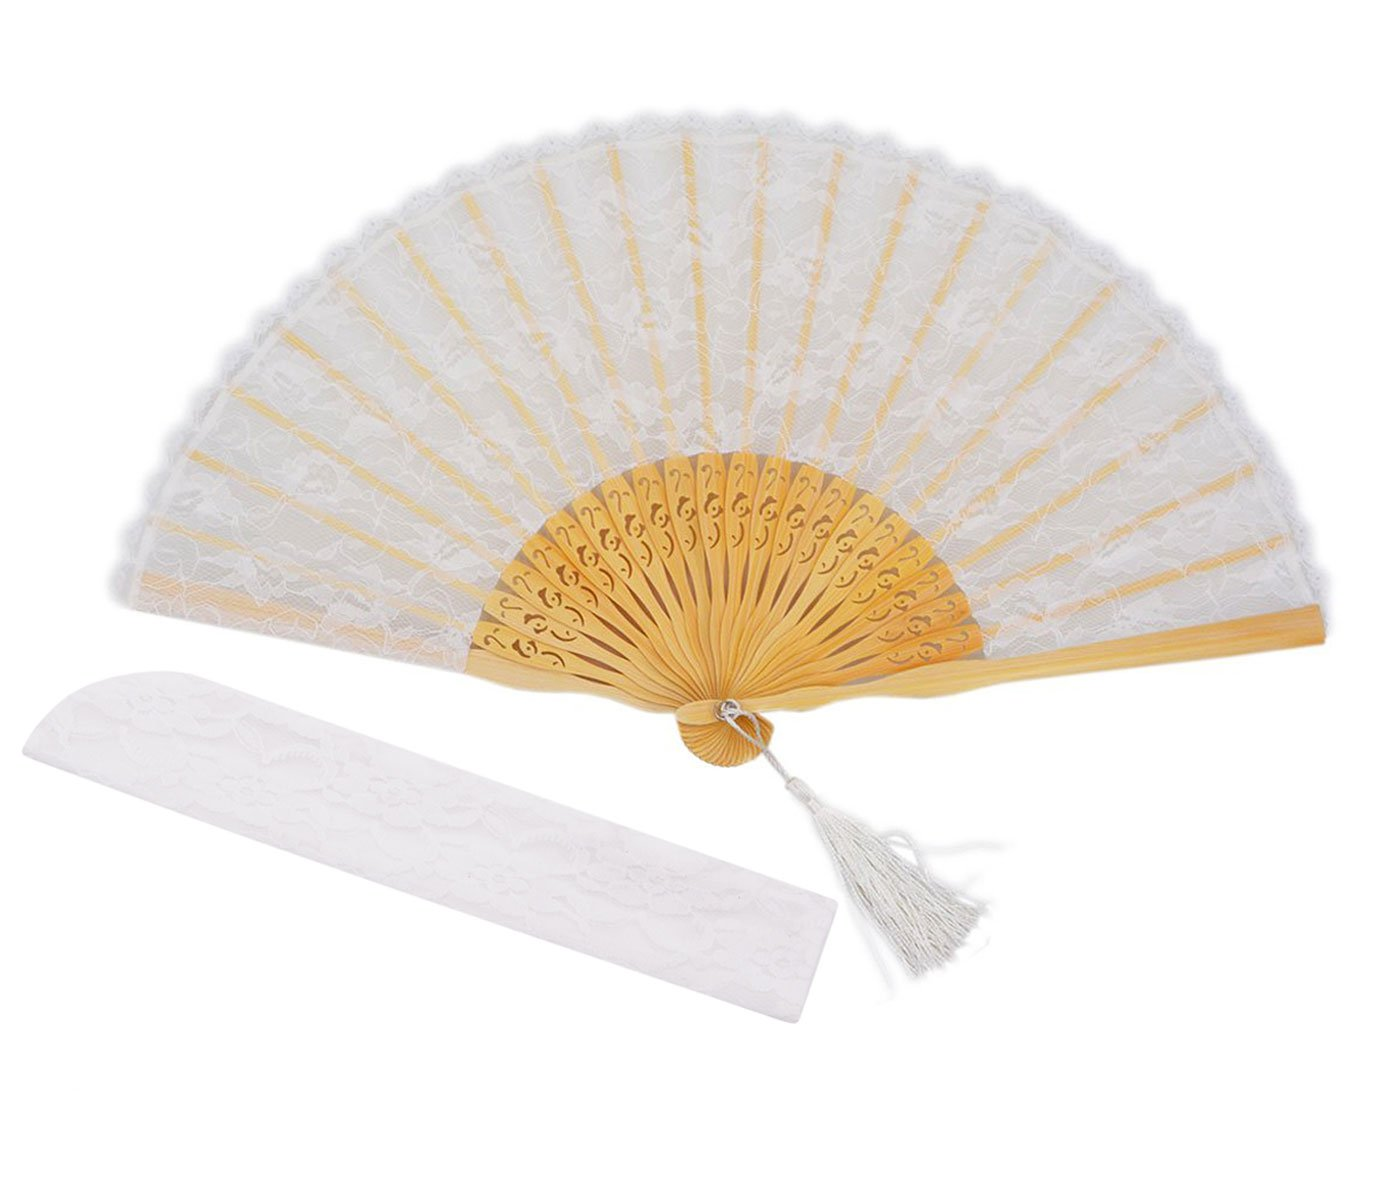 METABLE 2pieces/lot Vintage Style Bamboo Wood Silk Folding Hand Fan for Home Decoration Party Wedding Dancing Gift